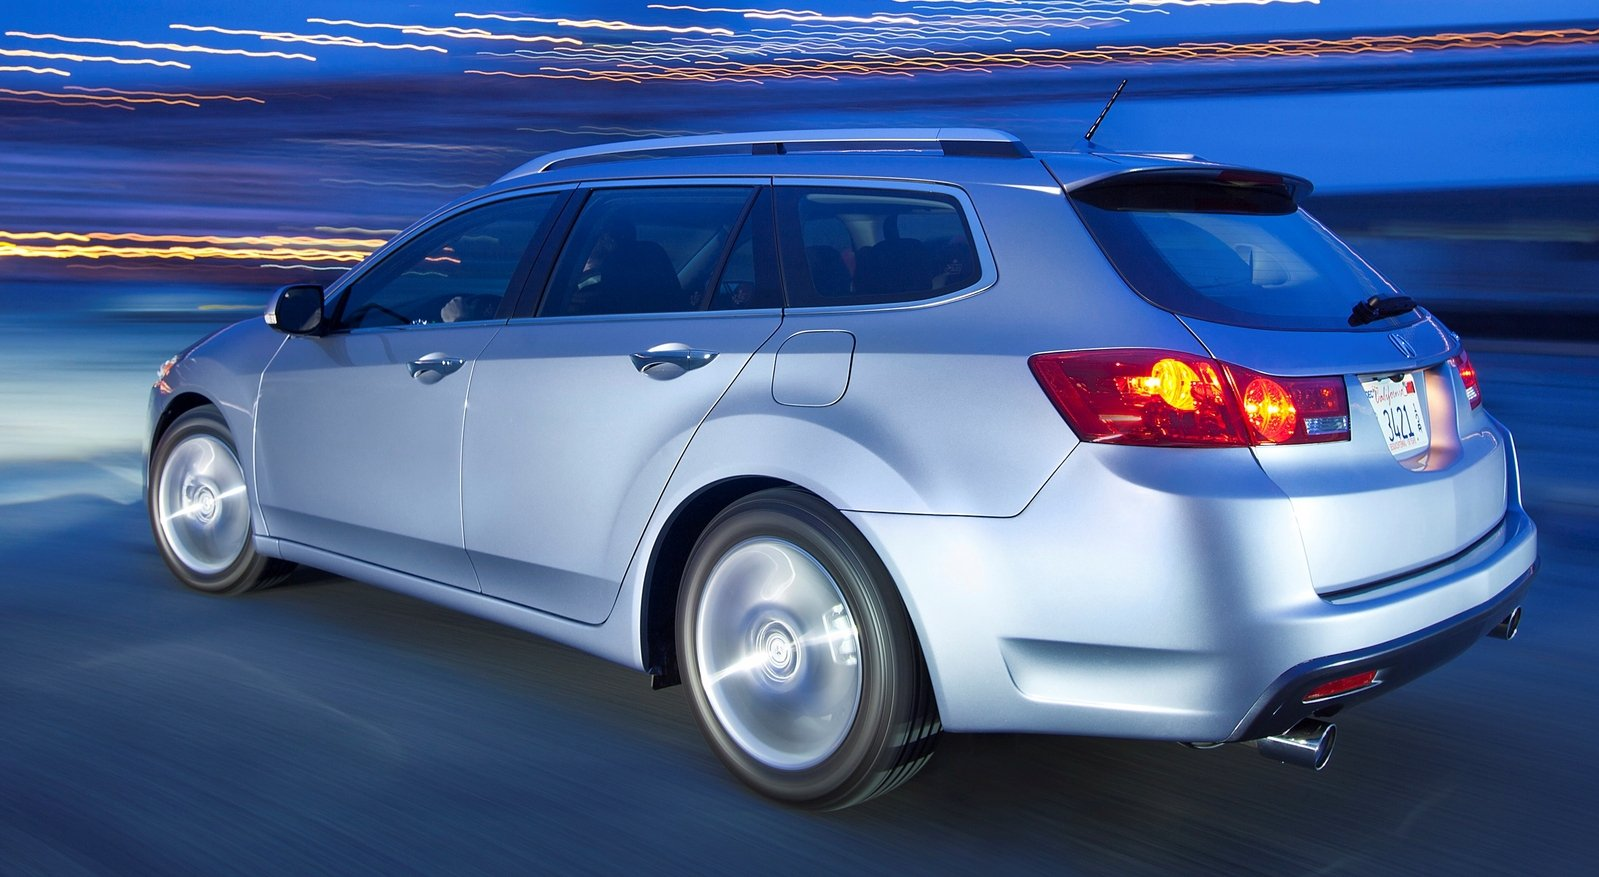 2014 acura tsx sport wagon picture 526327 car review top speed. Black Bedroom Furniture Sets. Home Design Ideas